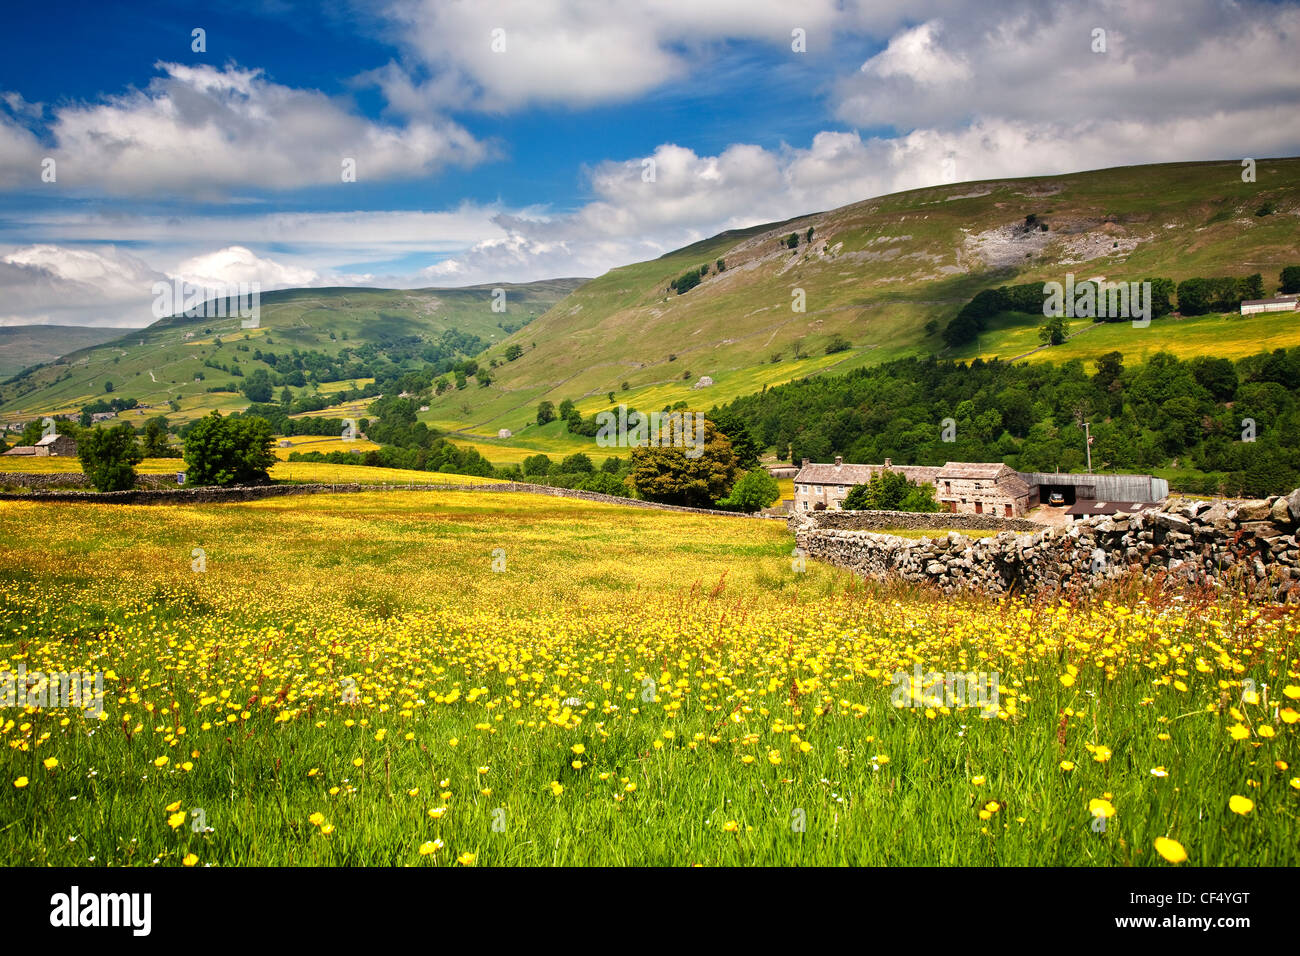 Wild flower meadow at Crowtees Farm near Muker, Swaledale, Yorkshire Dales National Park. - Stock Image